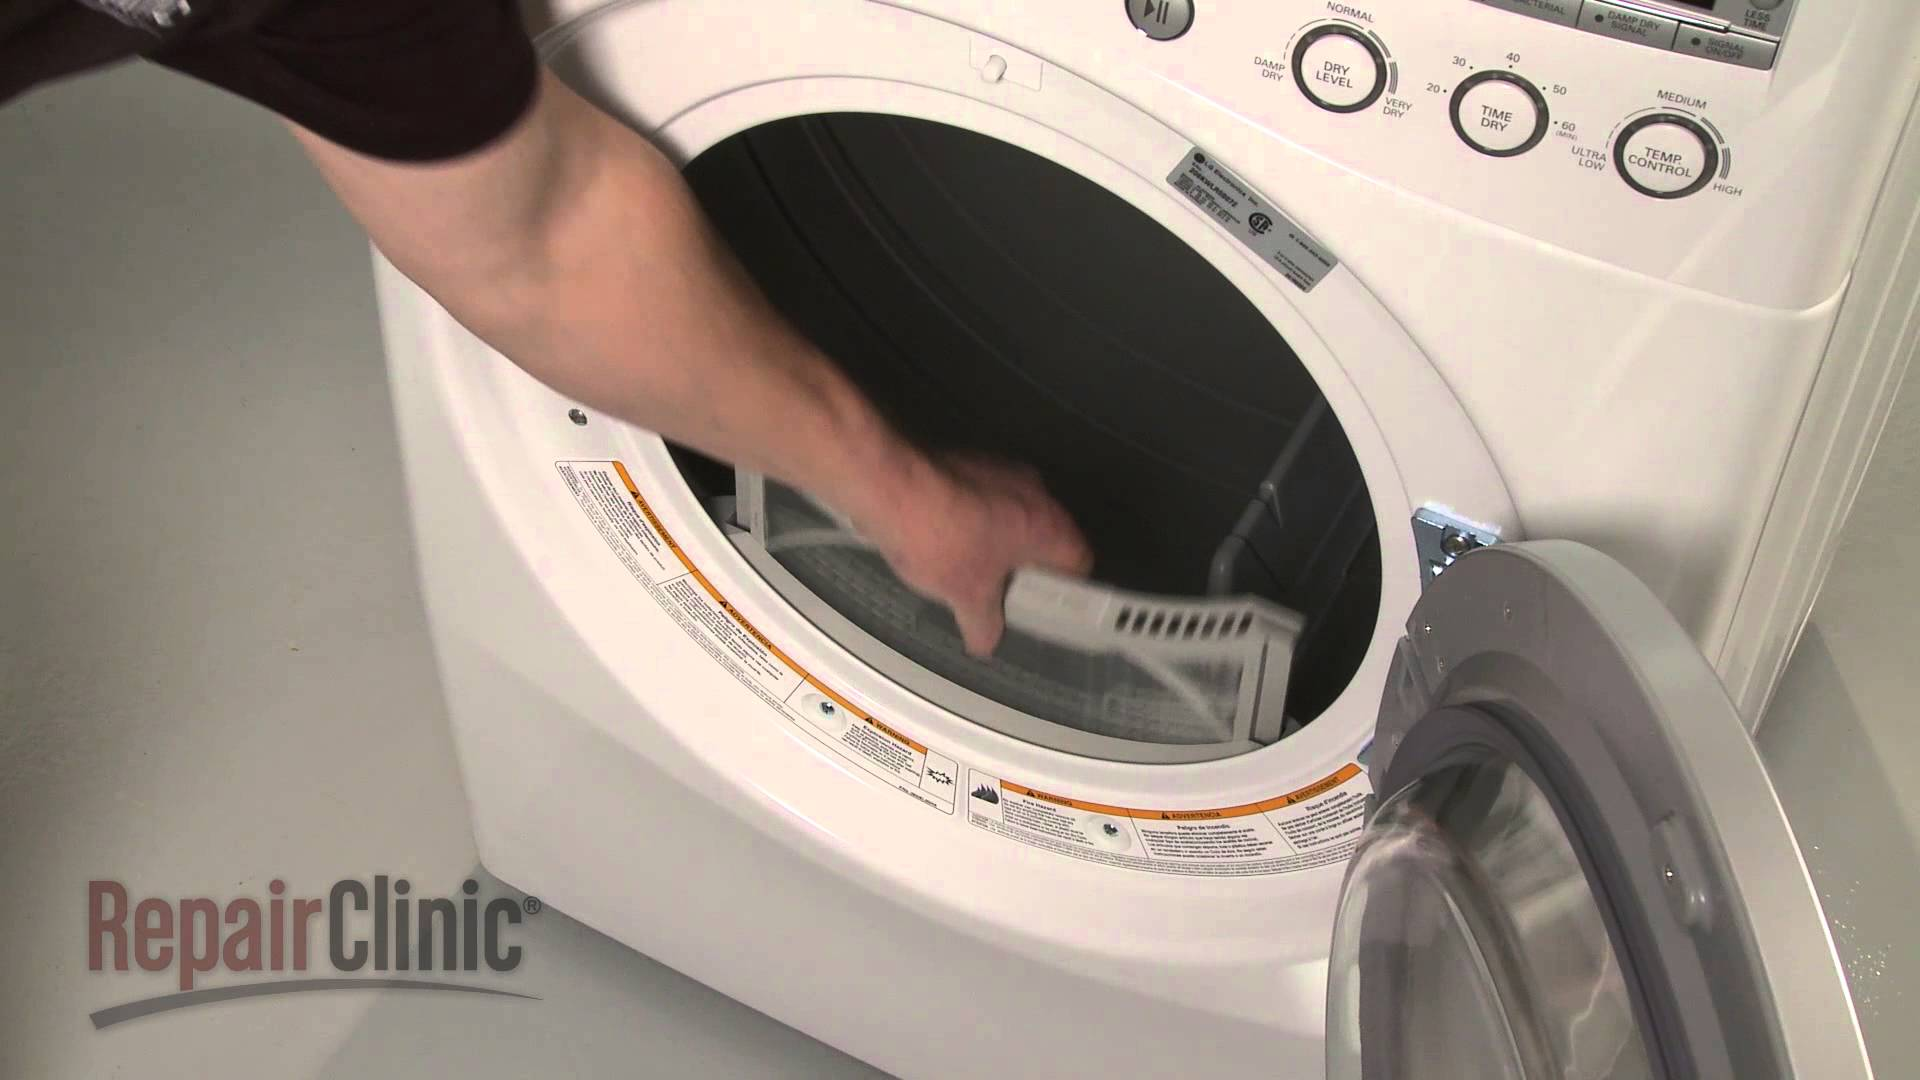 Replacing Lint Filter On A Lg Dryer Appliance Video